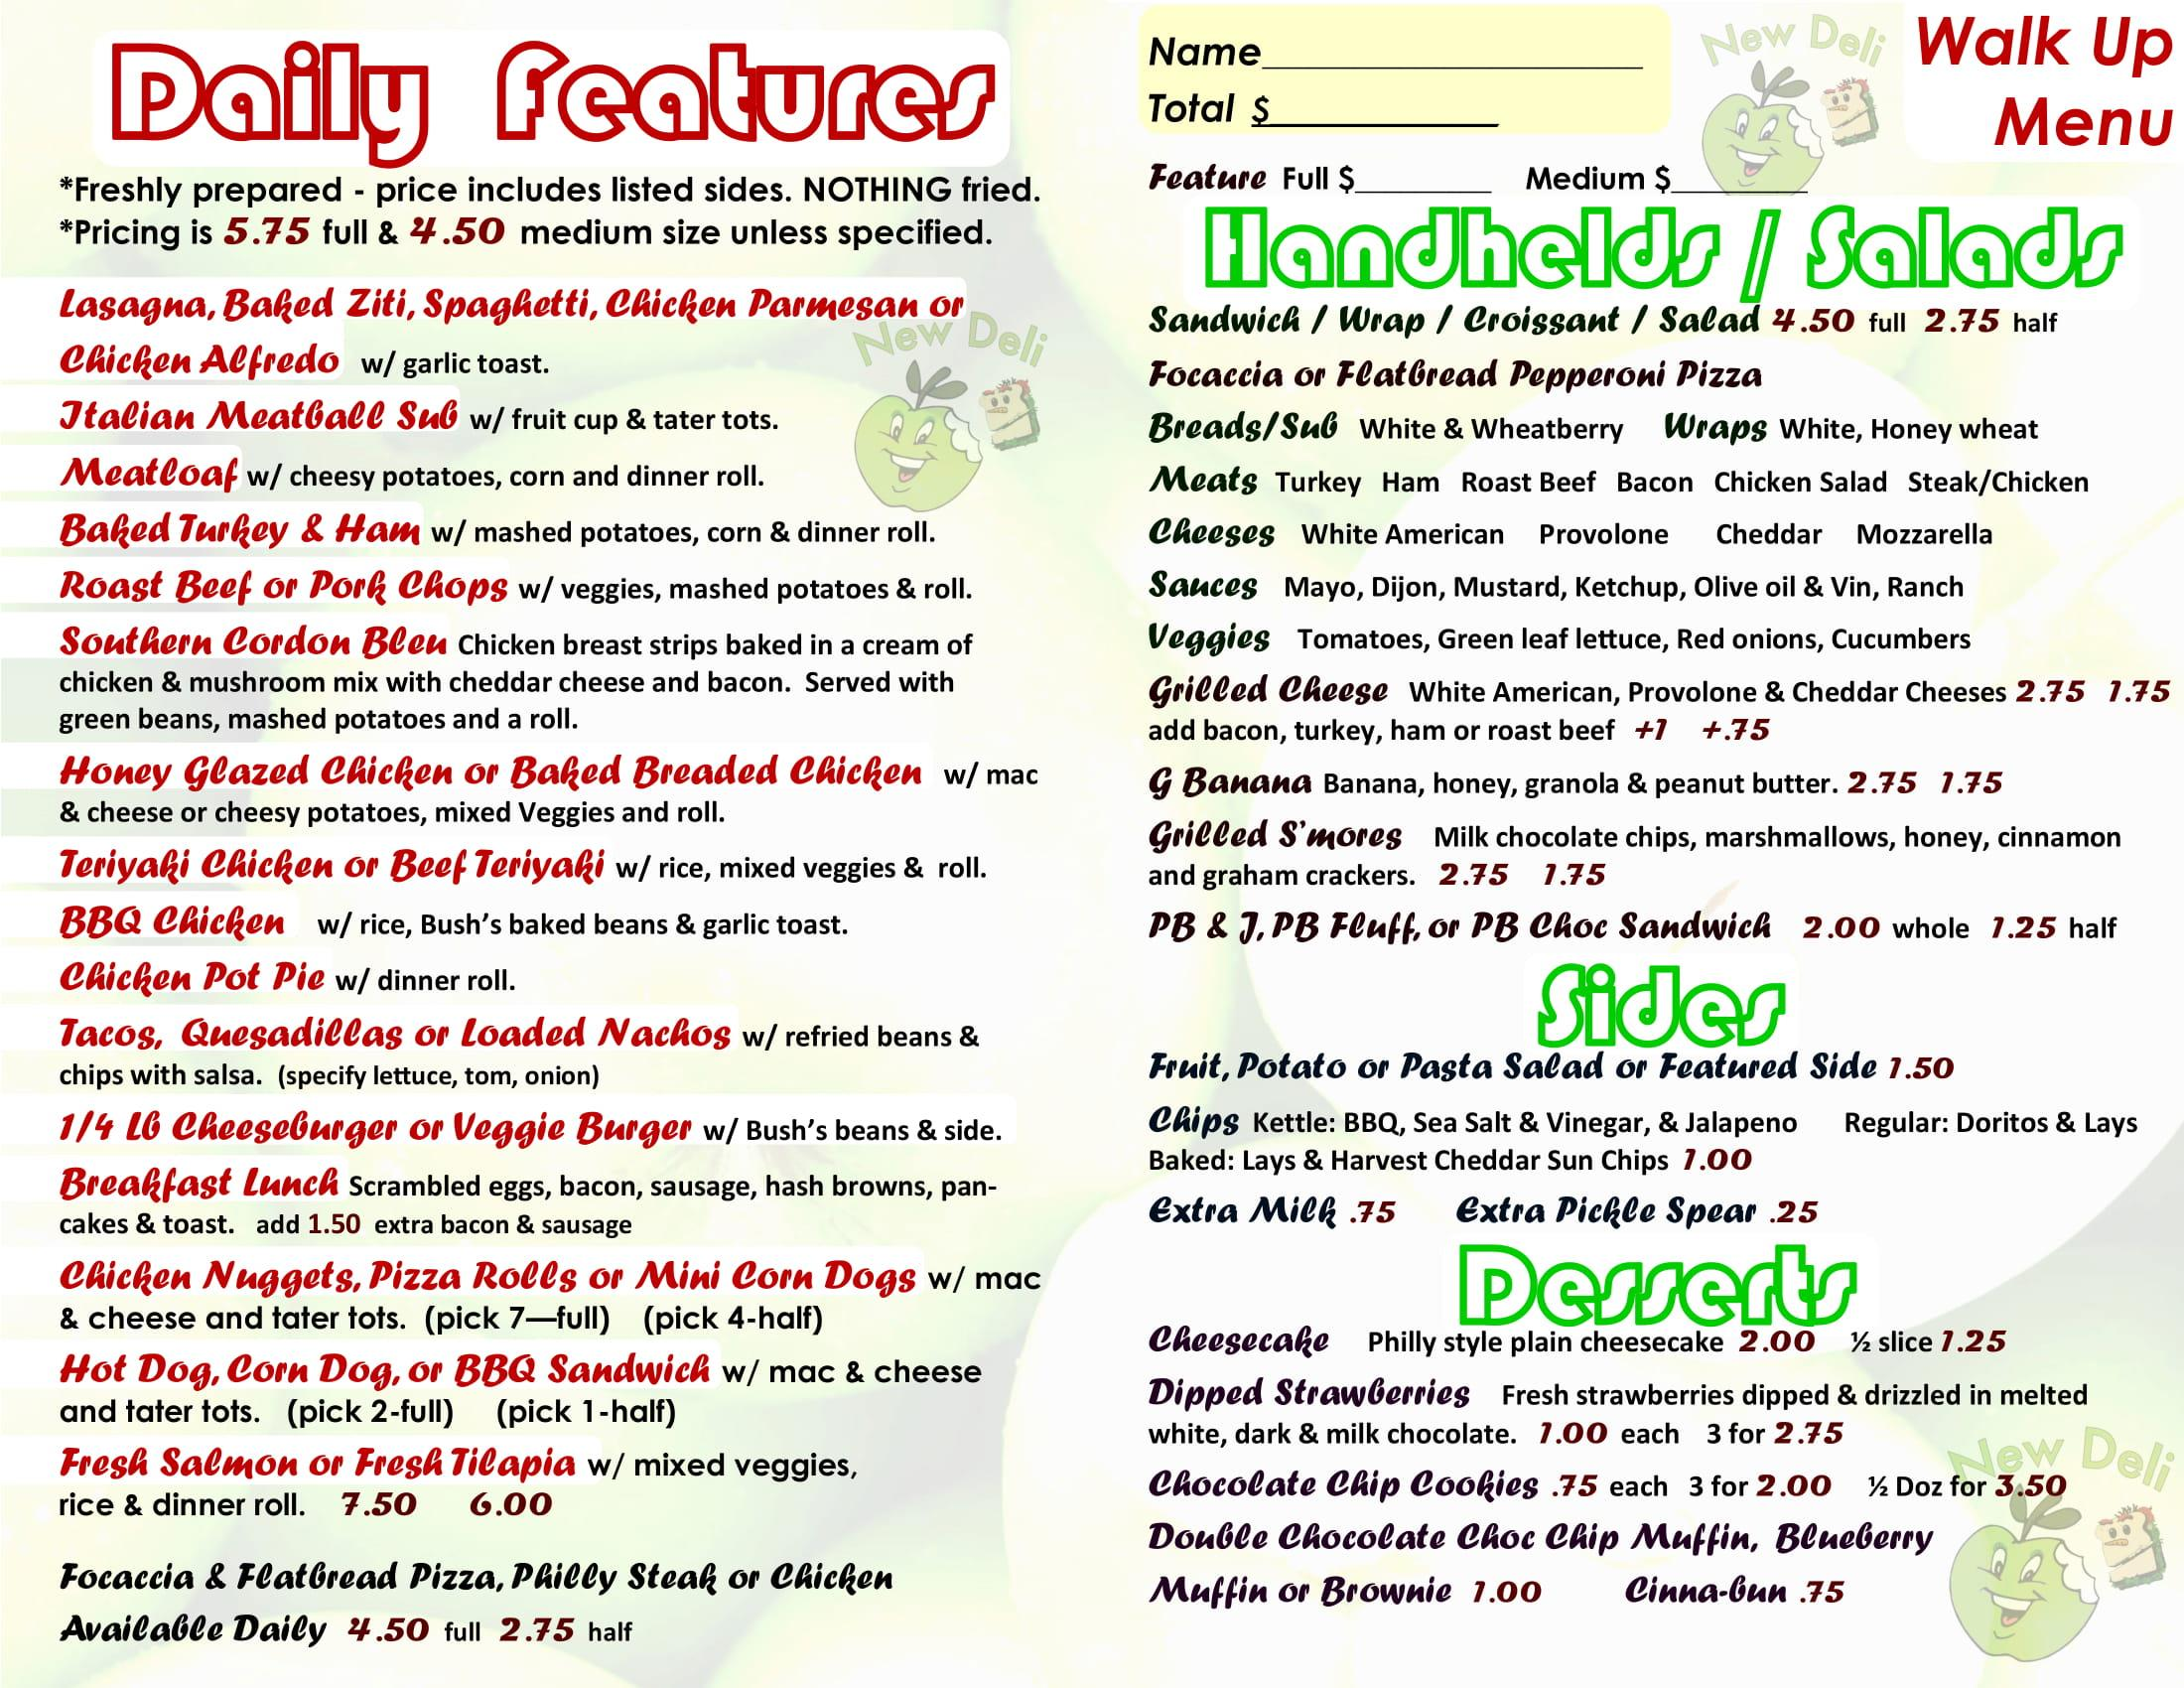 click above for readable walk up menu version